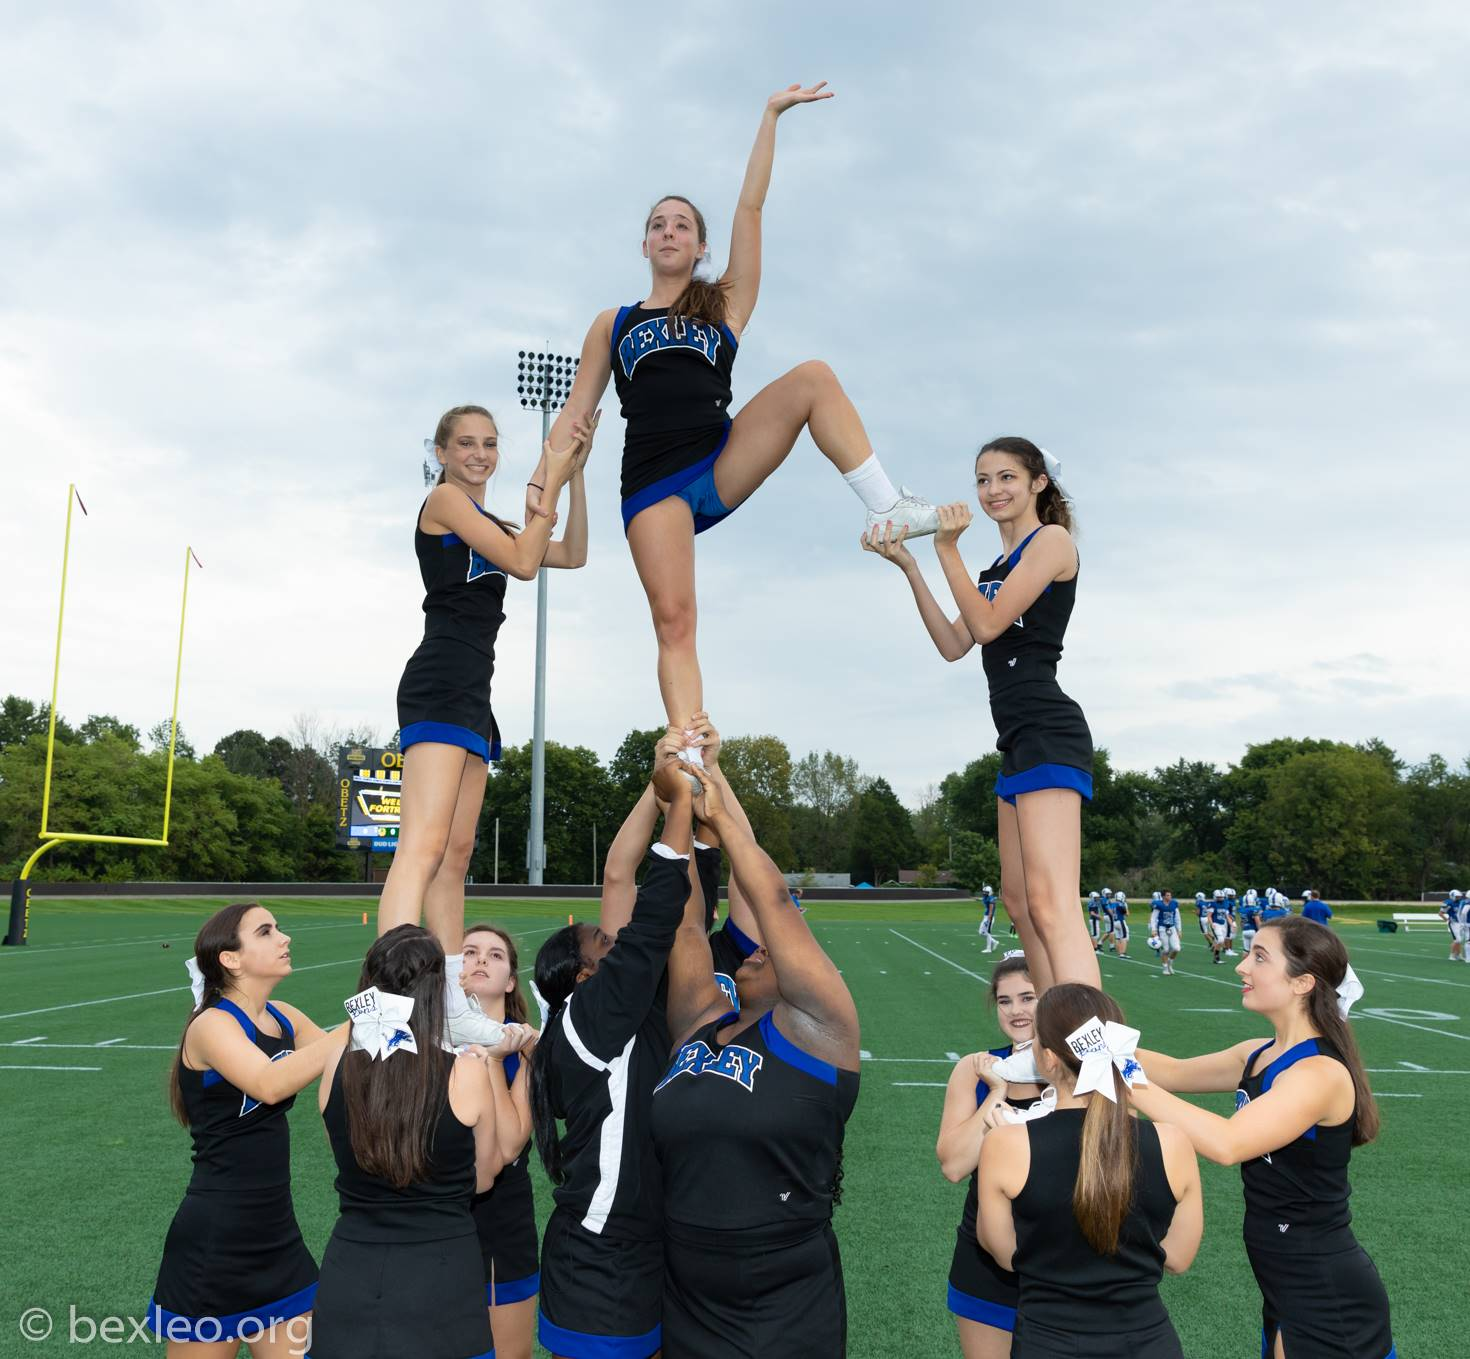 Cheerleaders warming up for the game